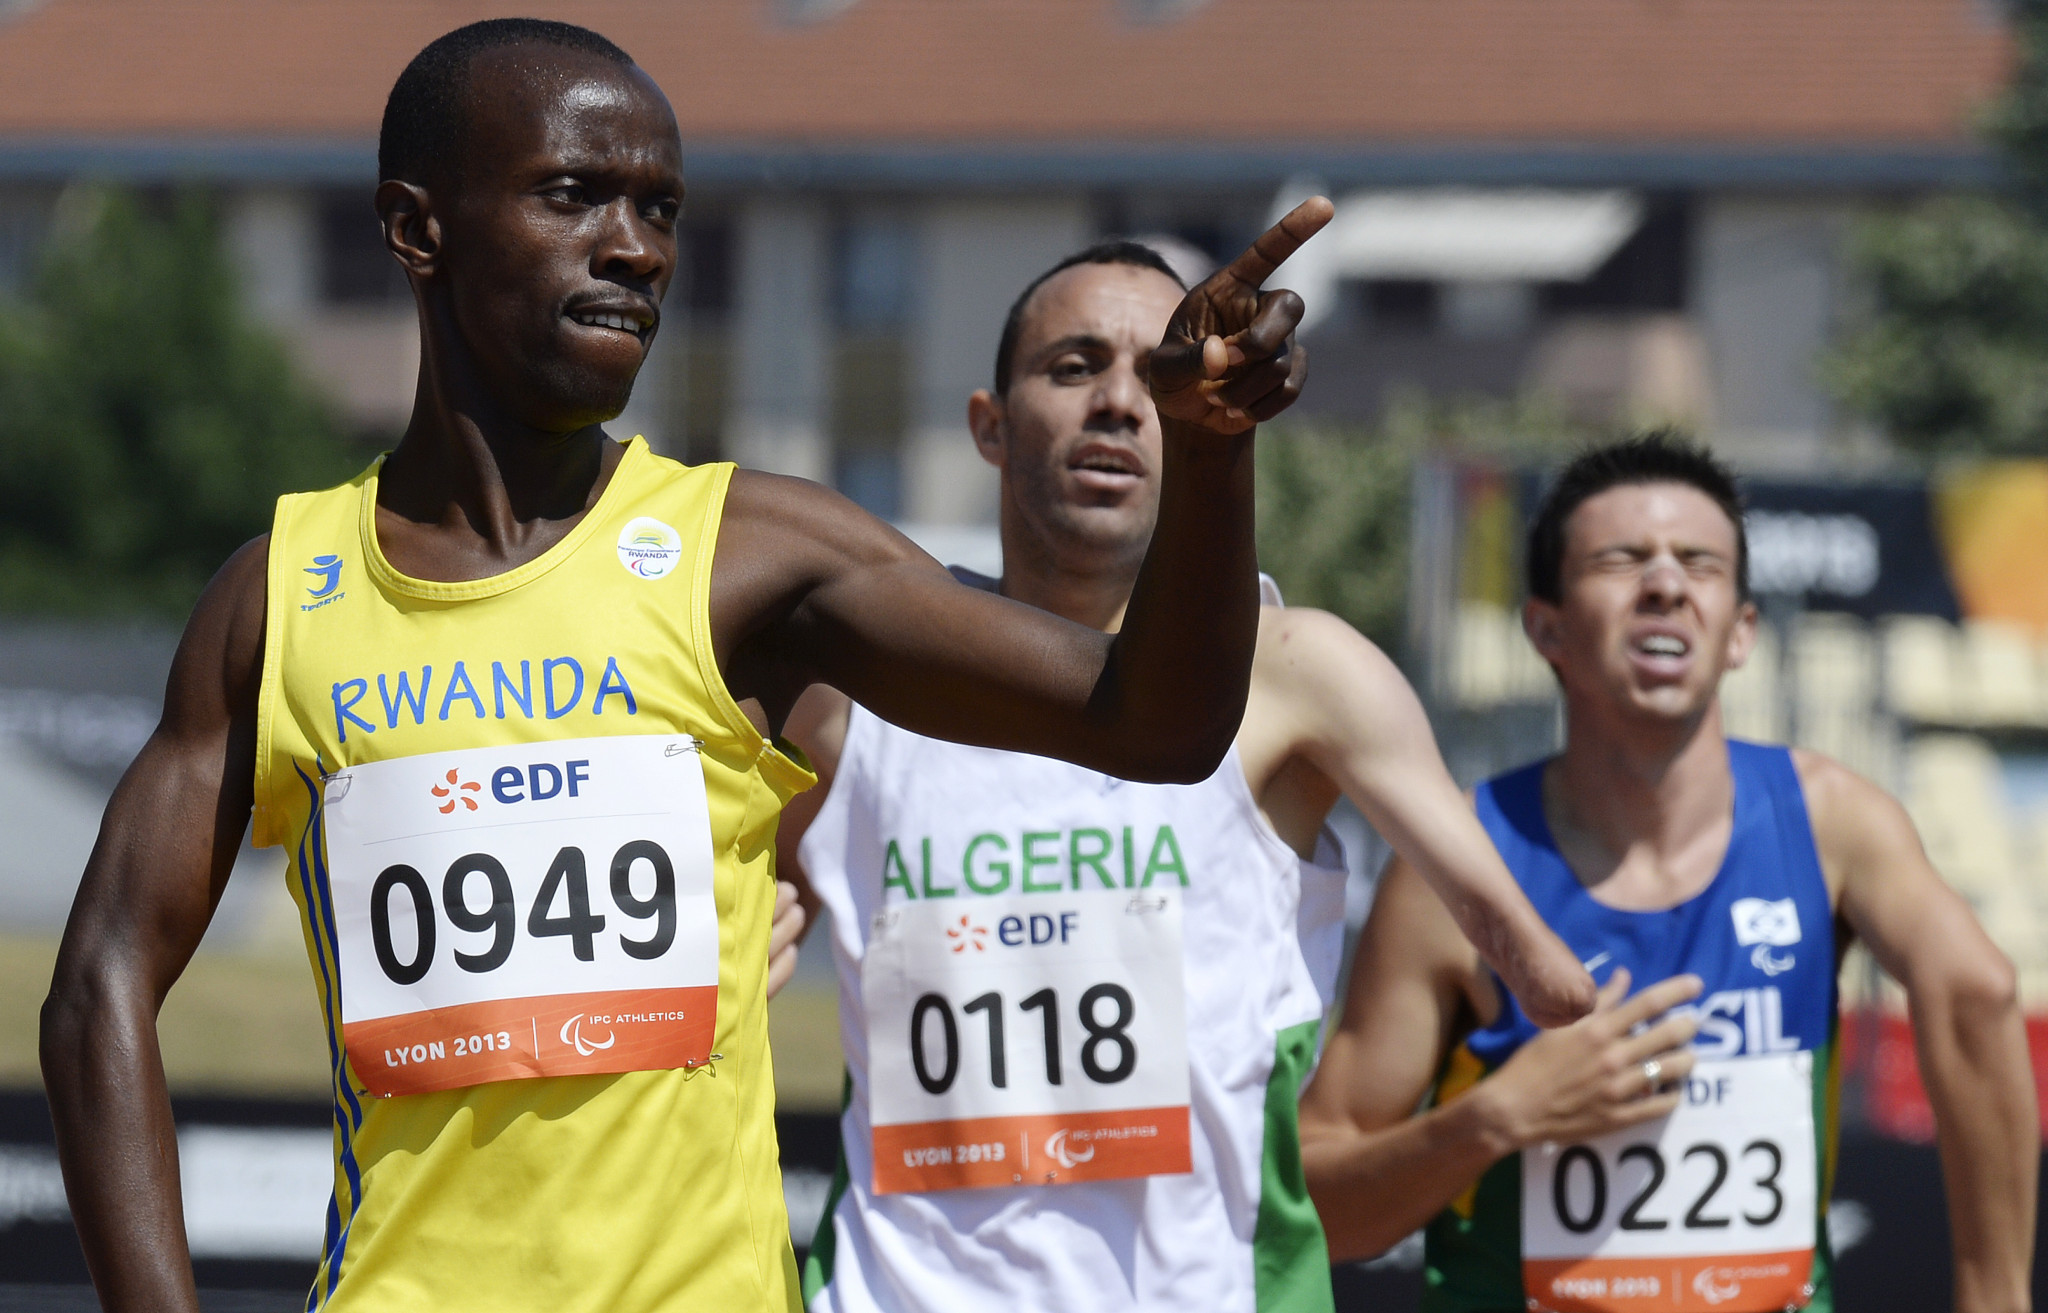 Rwanda lift ban of athlete suspended for criticising running of Paralympic sport